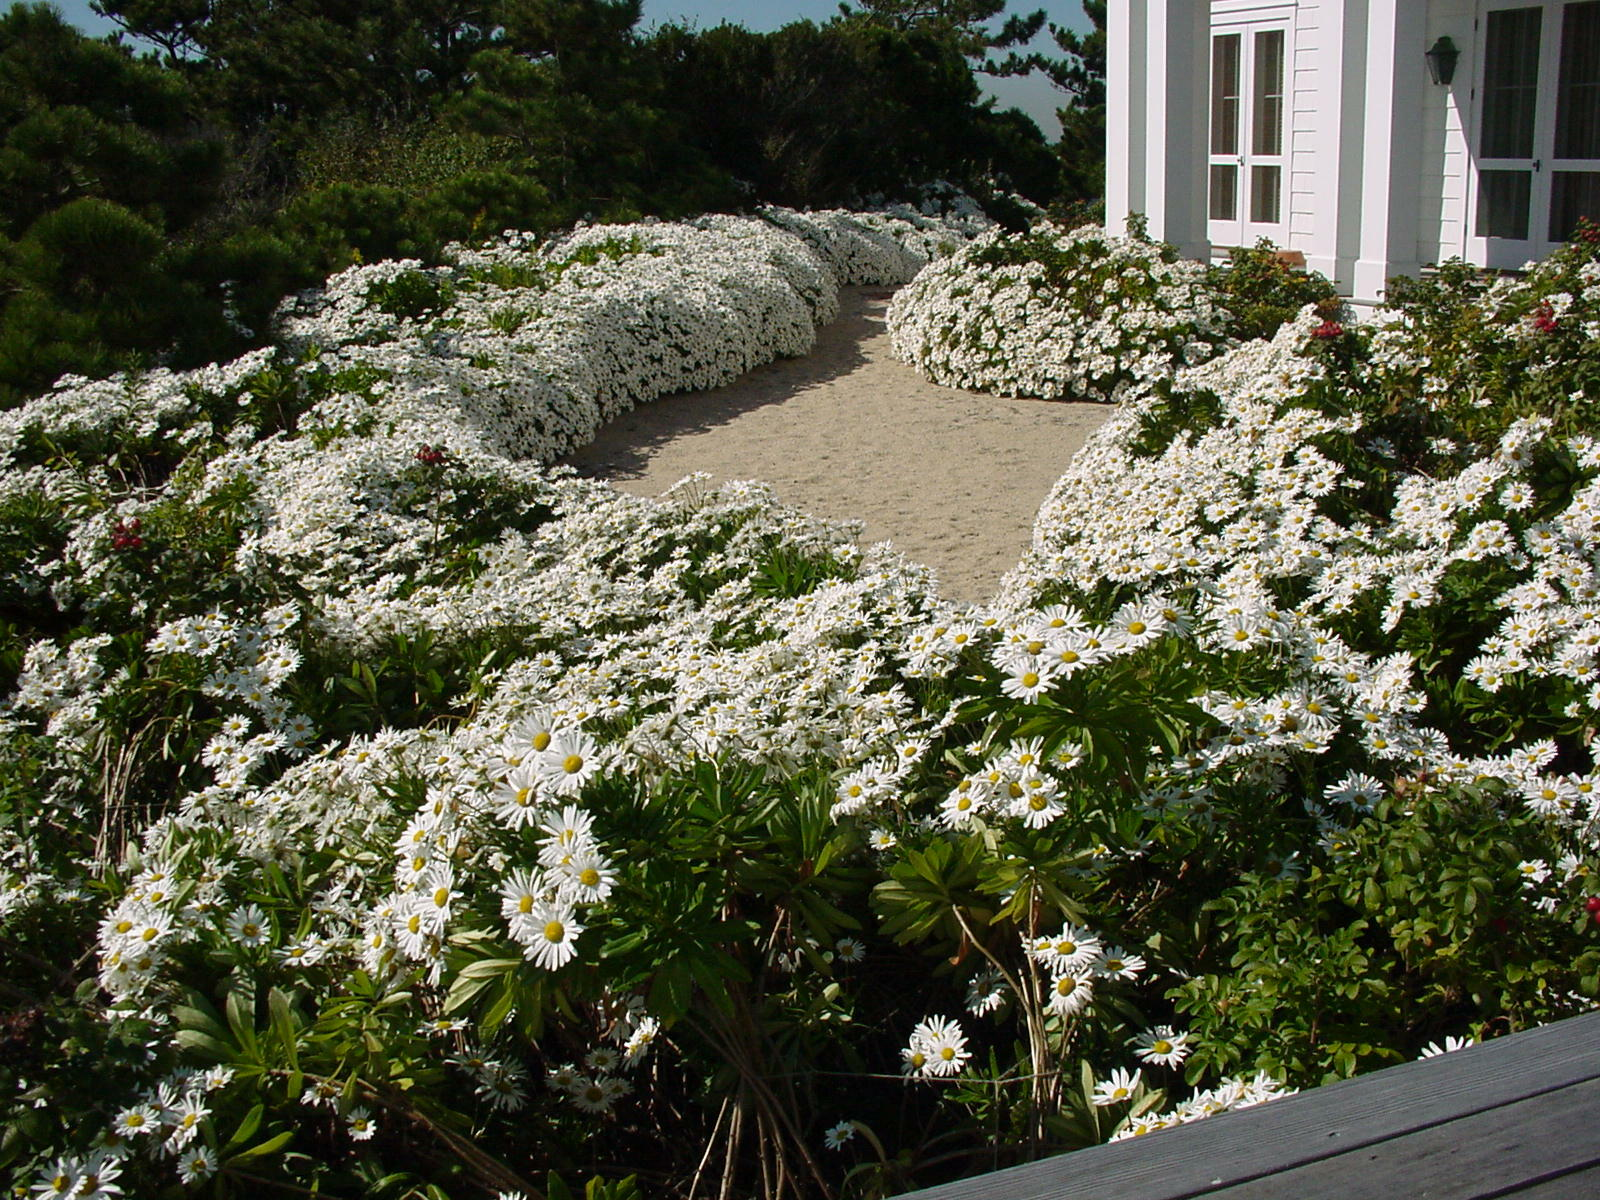 A mass planting of Montauk daisies on the ocean-facing side of a Southampton home.  Notice the plants are growing in pure beach sand and the plants are tight and not falling over in this mid-October shot.